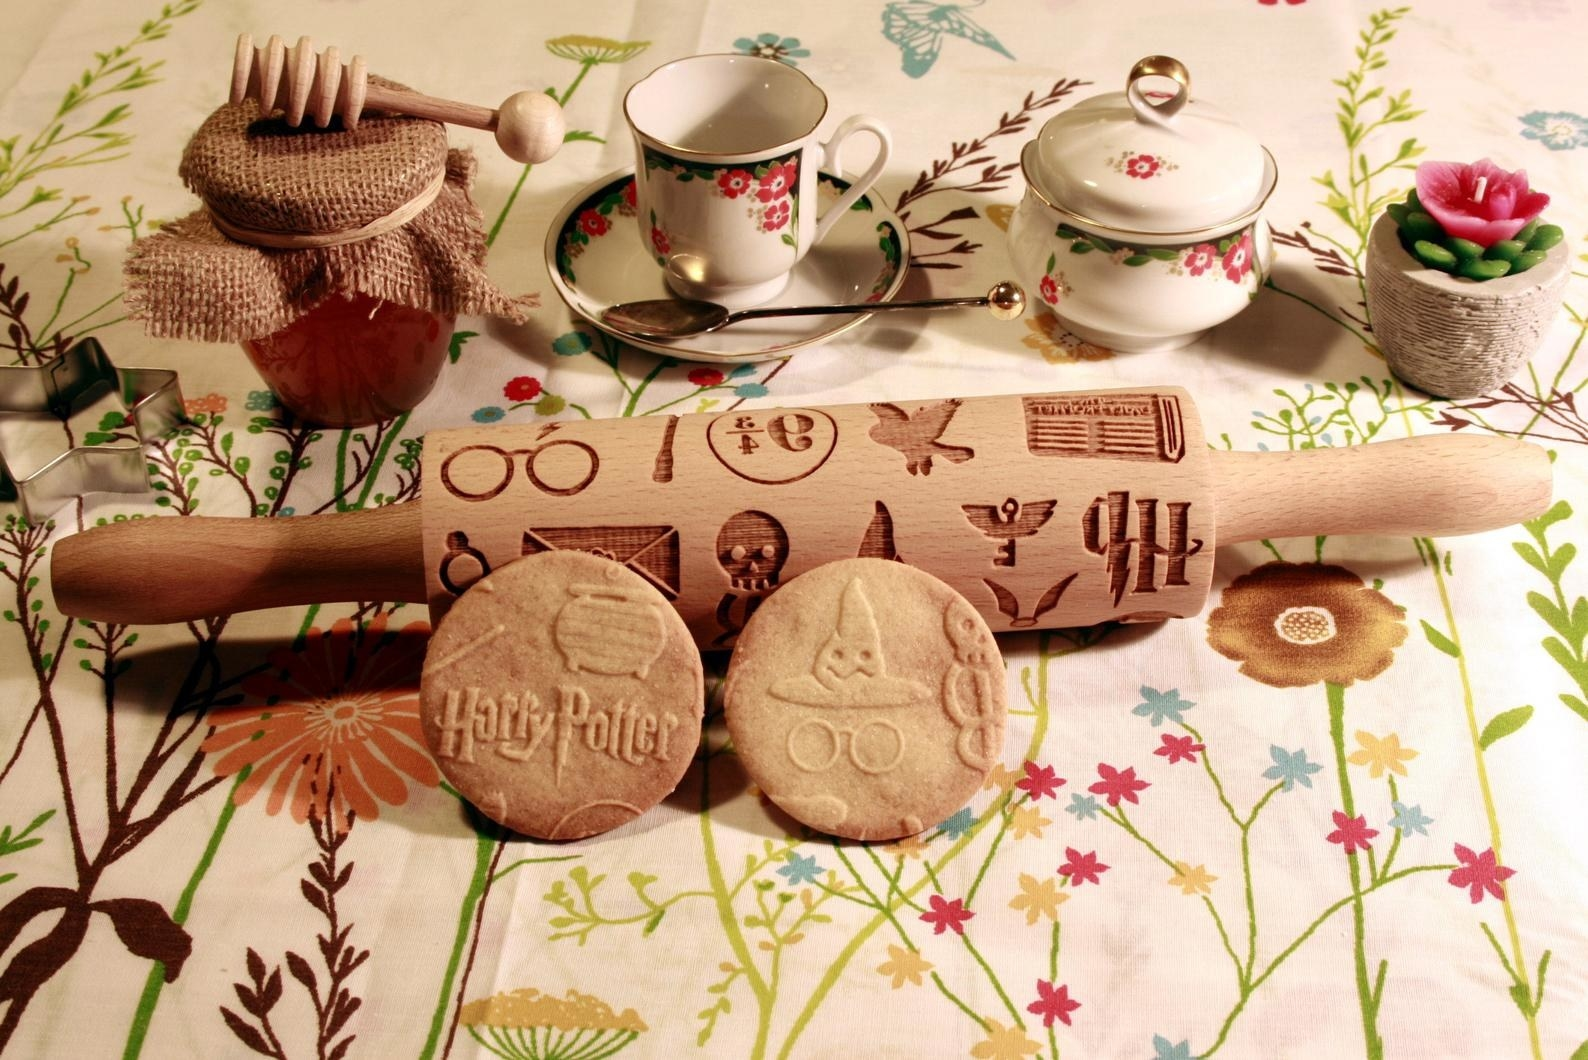 the rolling pin with cookies imprinted with Harry Potter designs